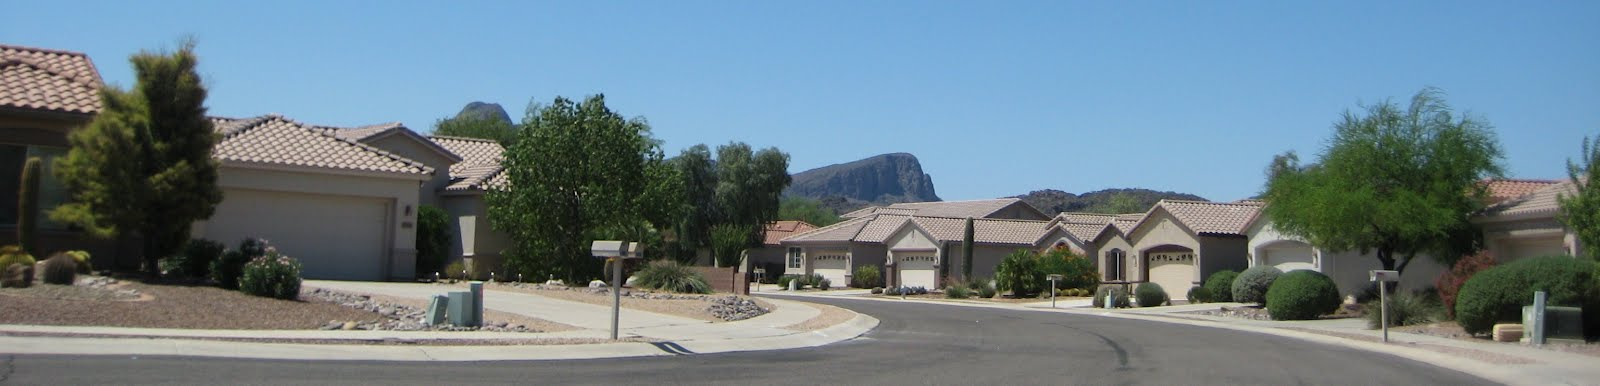 adult links 4 adults. Buying an Active Adult Community Home in Marana, ...